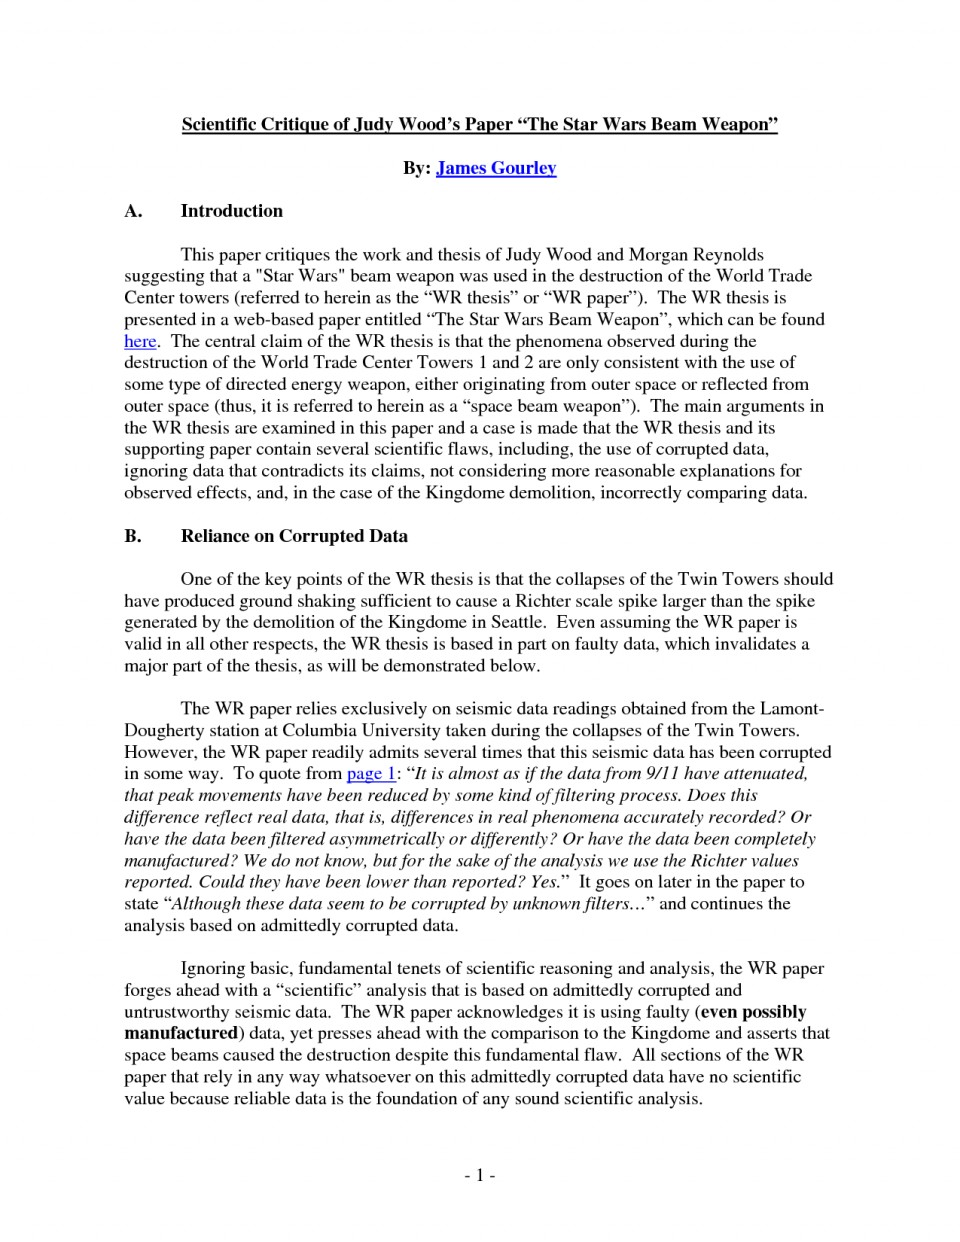 003 Critique Essay Example Of Research Paper 131380 Remarkable Layout Speech Examples How To Write A An Article 960